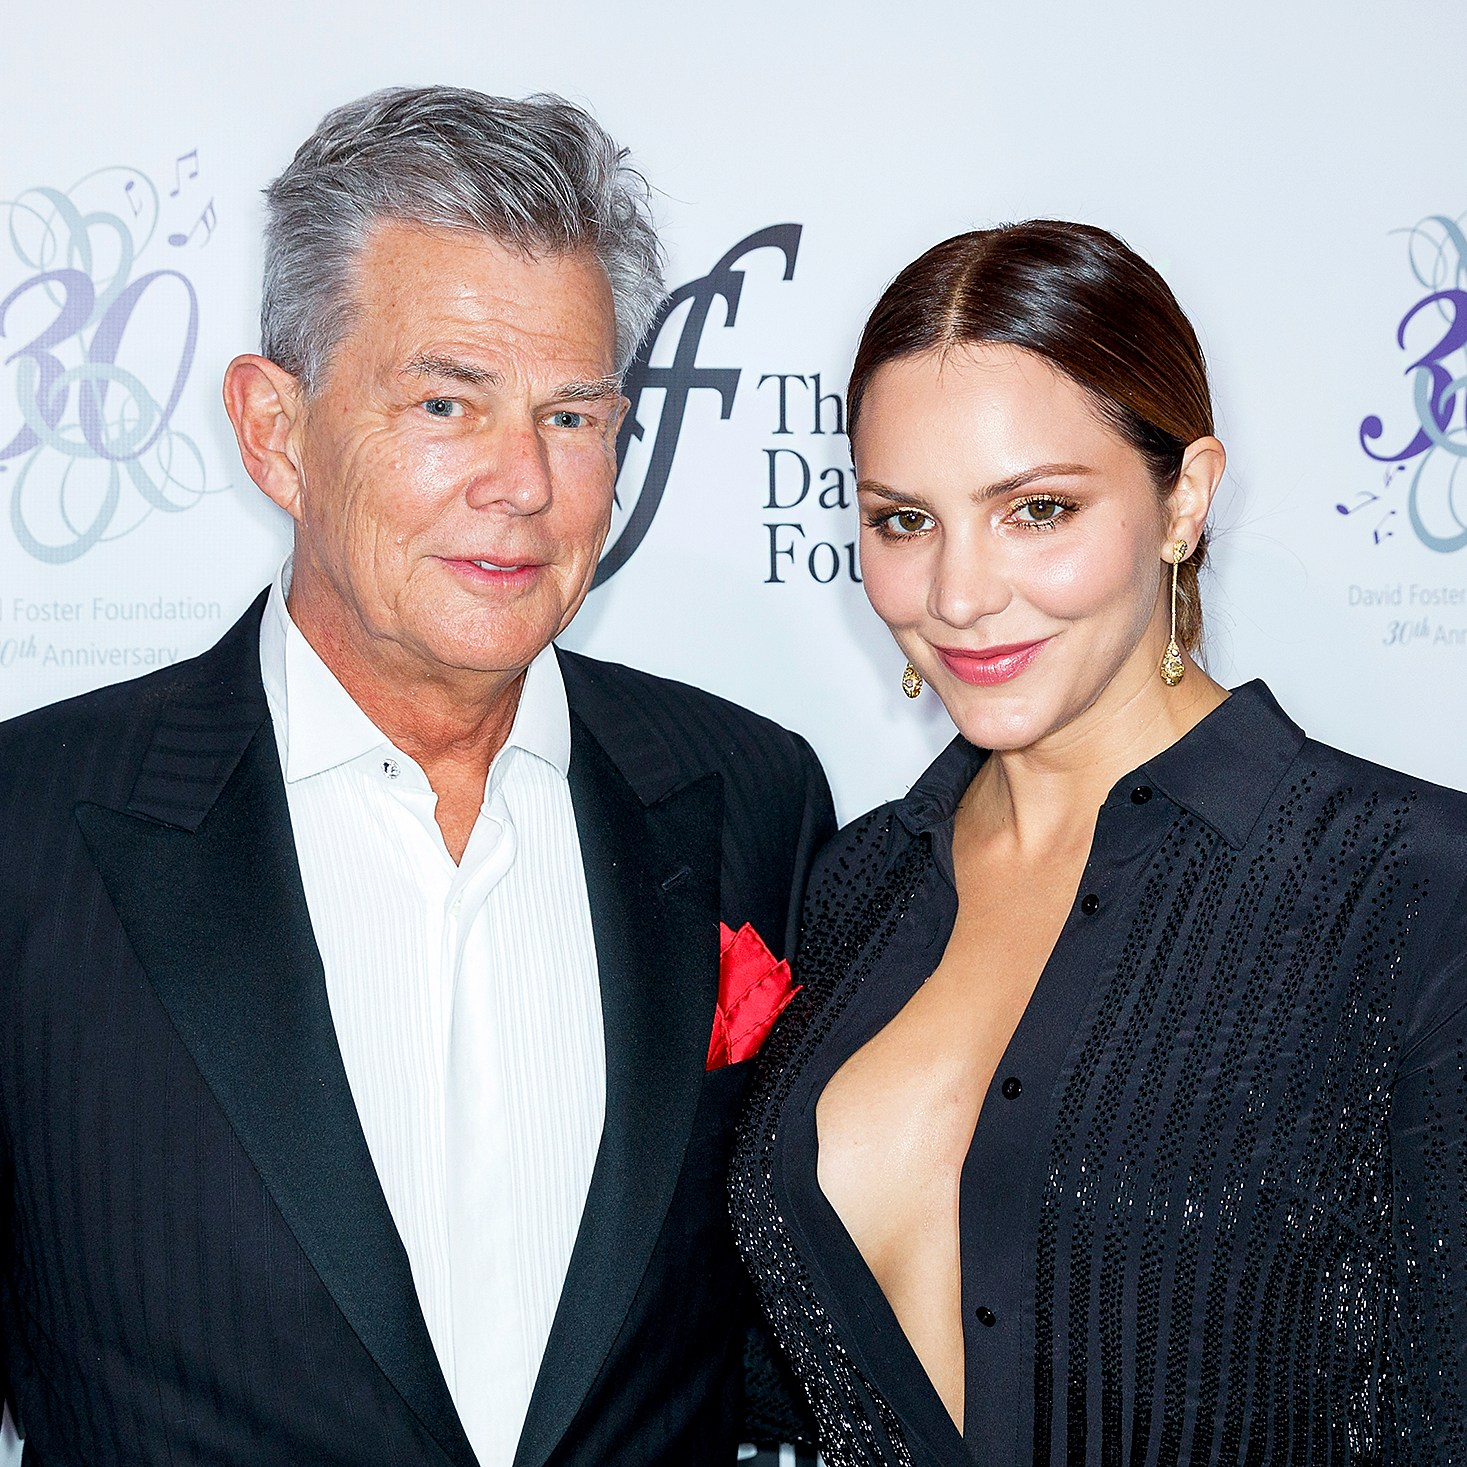 David Foster and Katharine McPhee arrive for the David Foster Foundation Gala at Rogers Arena on October 21, 2017 in Vancouver, Canada.